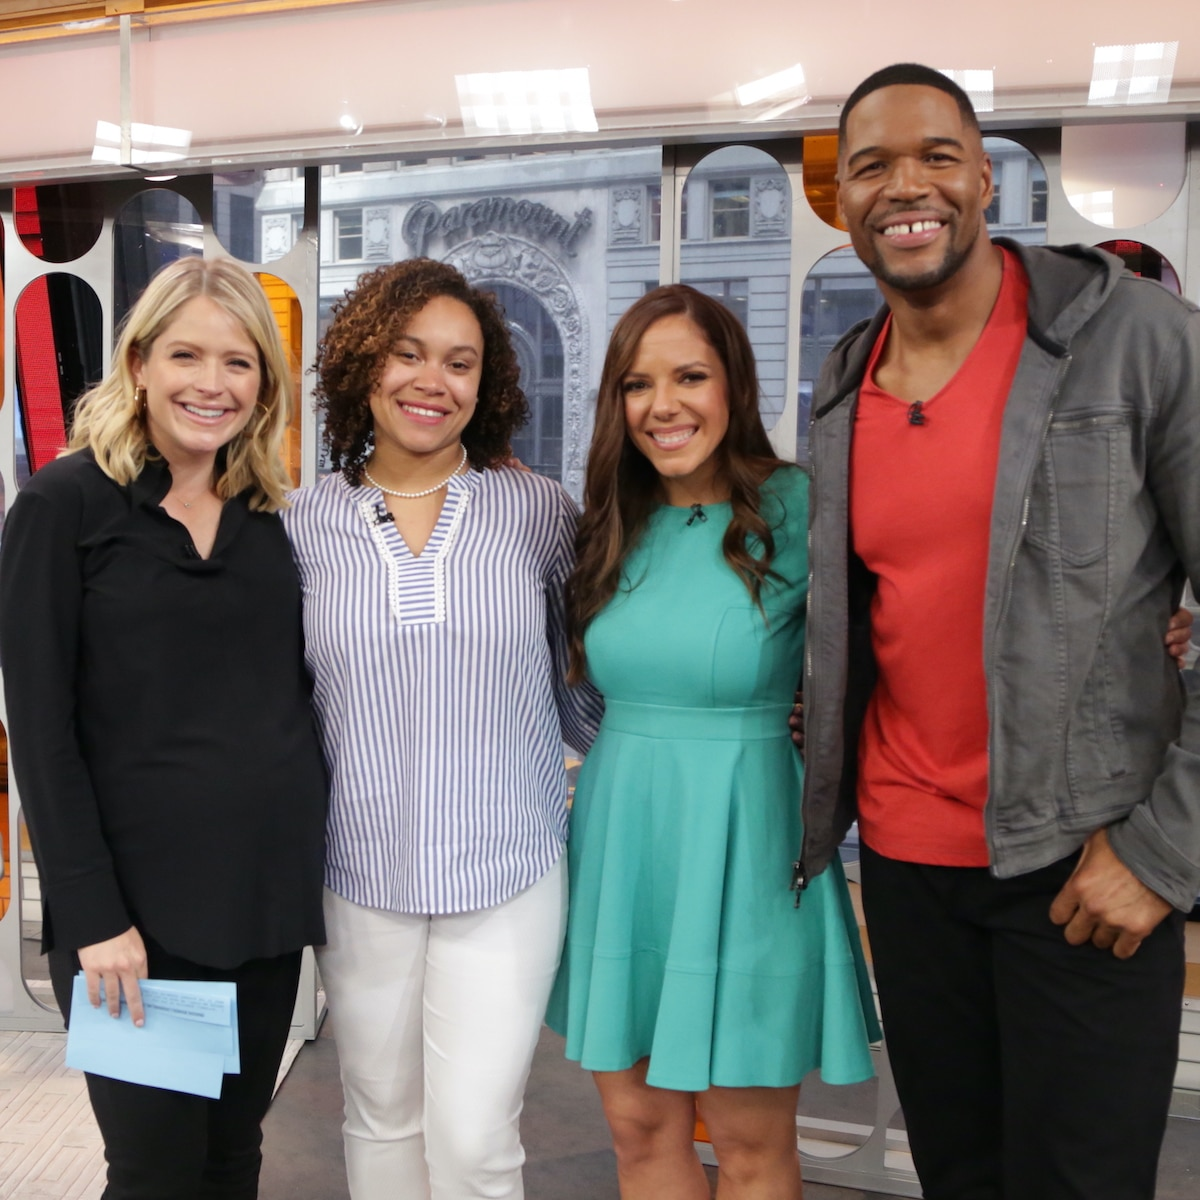 Sara Haines, Jessica Bishop, Michael Strahan - Save Money on a Wedding from Good Morning America